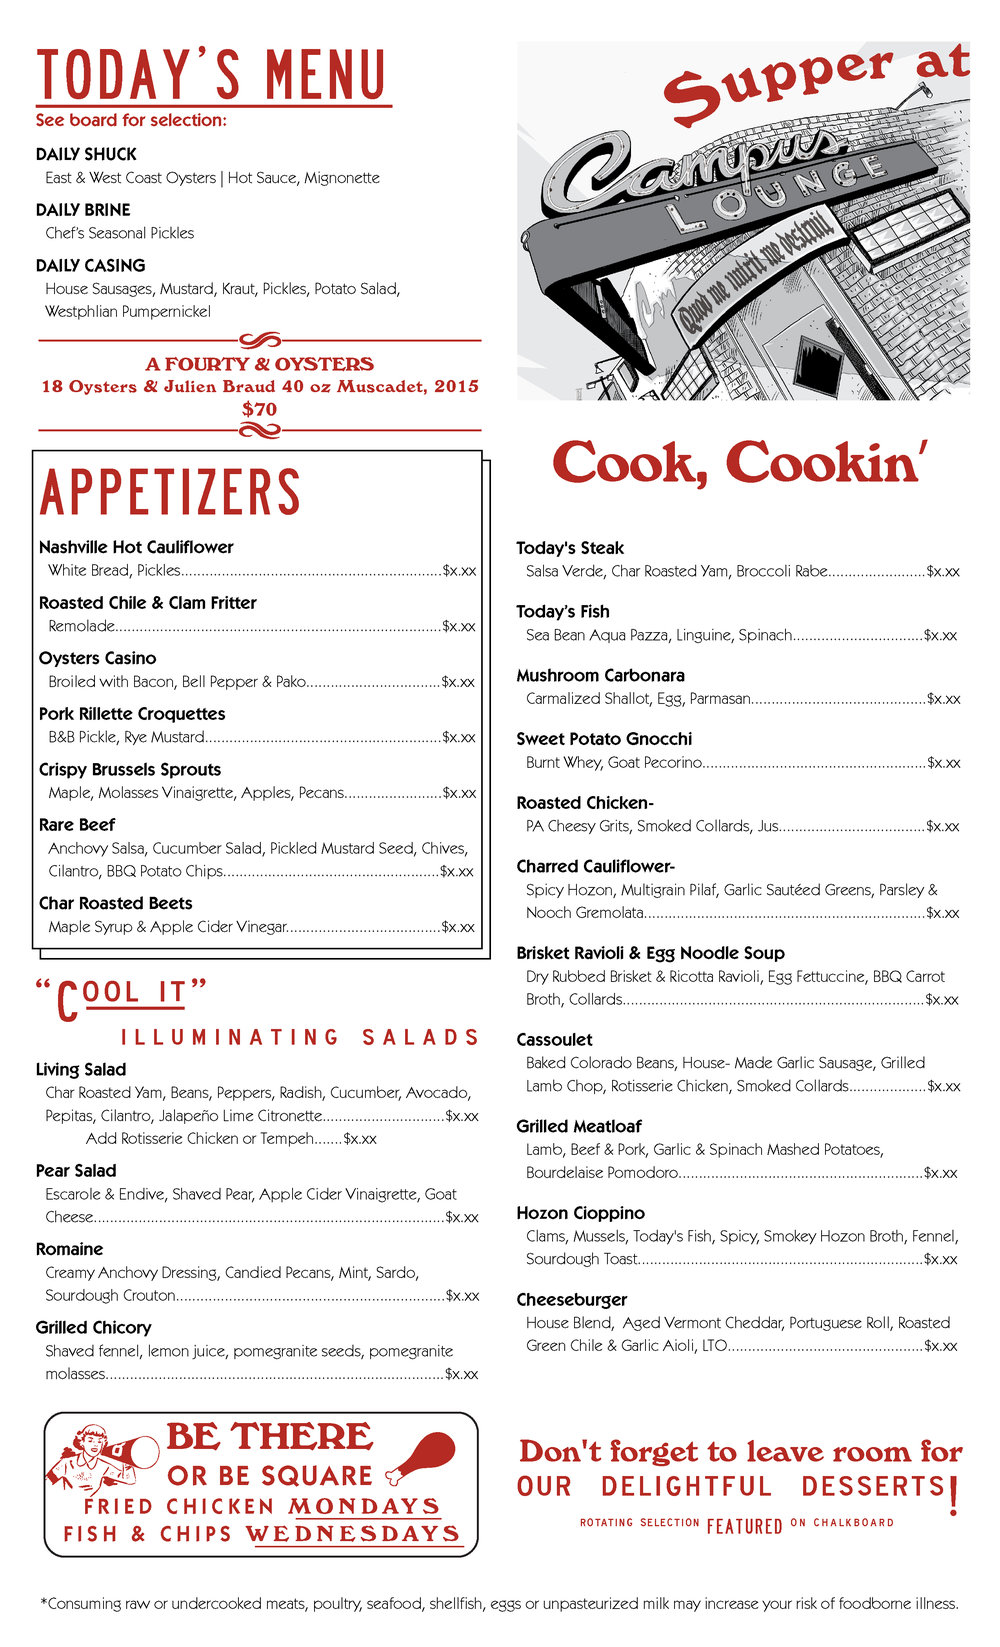 CAMPUS_LOUNGE_SUPPER_MENU_LEGAL_1-2-01.jpg